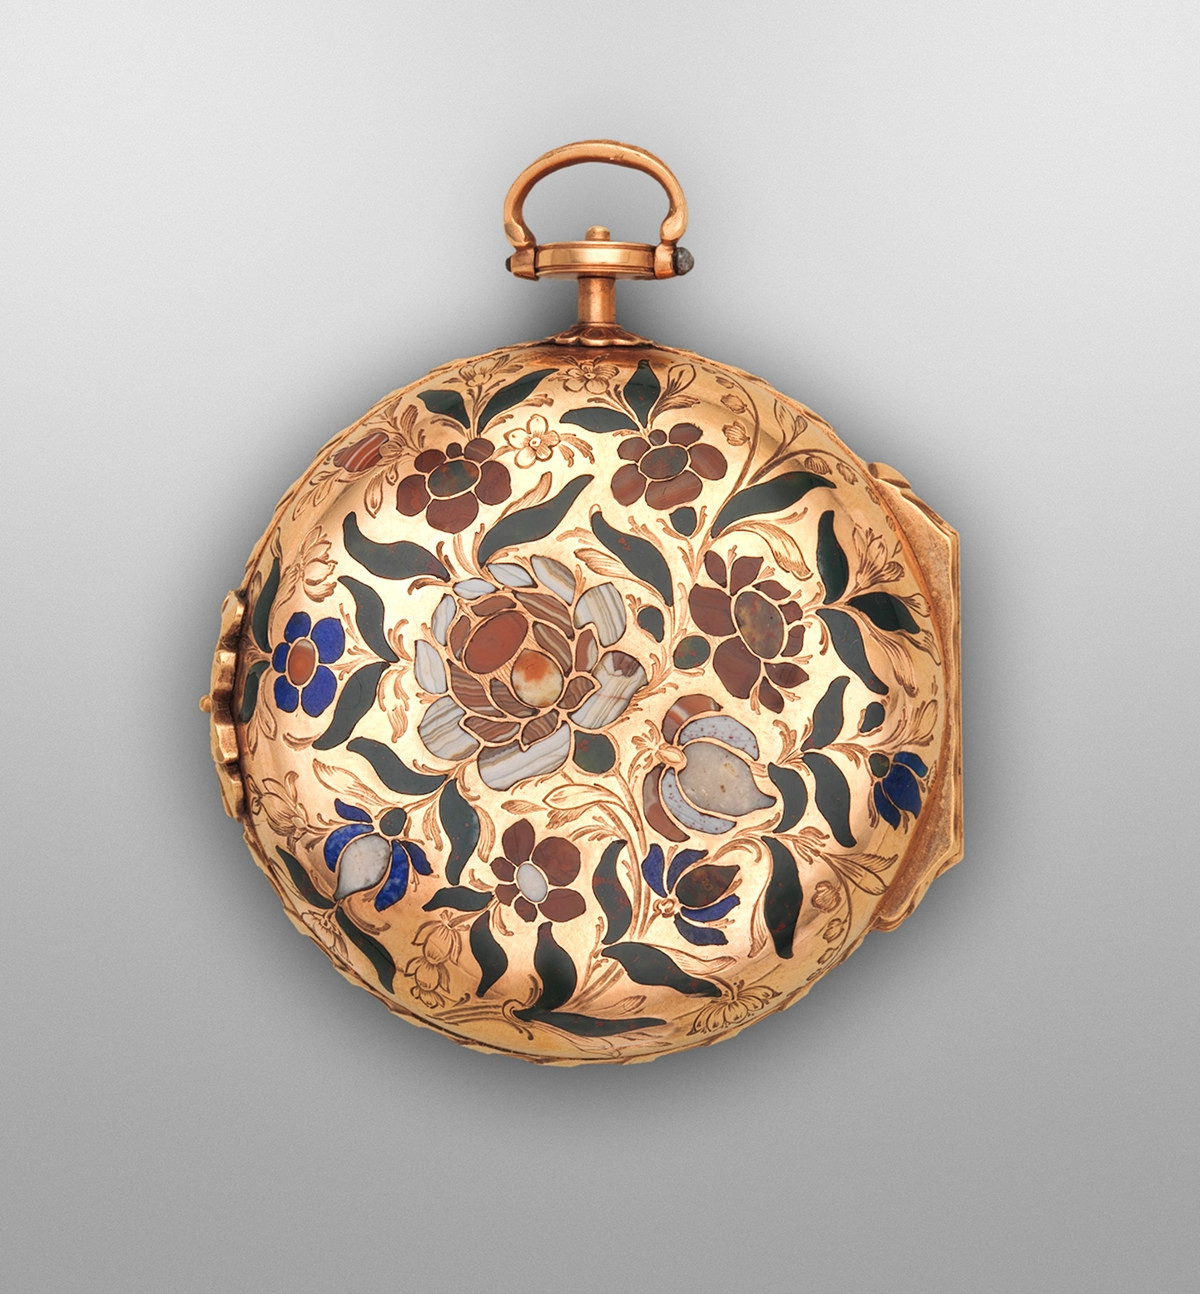 1770. Watch. German, Dresden. Case gold, inlaid with hardstones. metmuseum